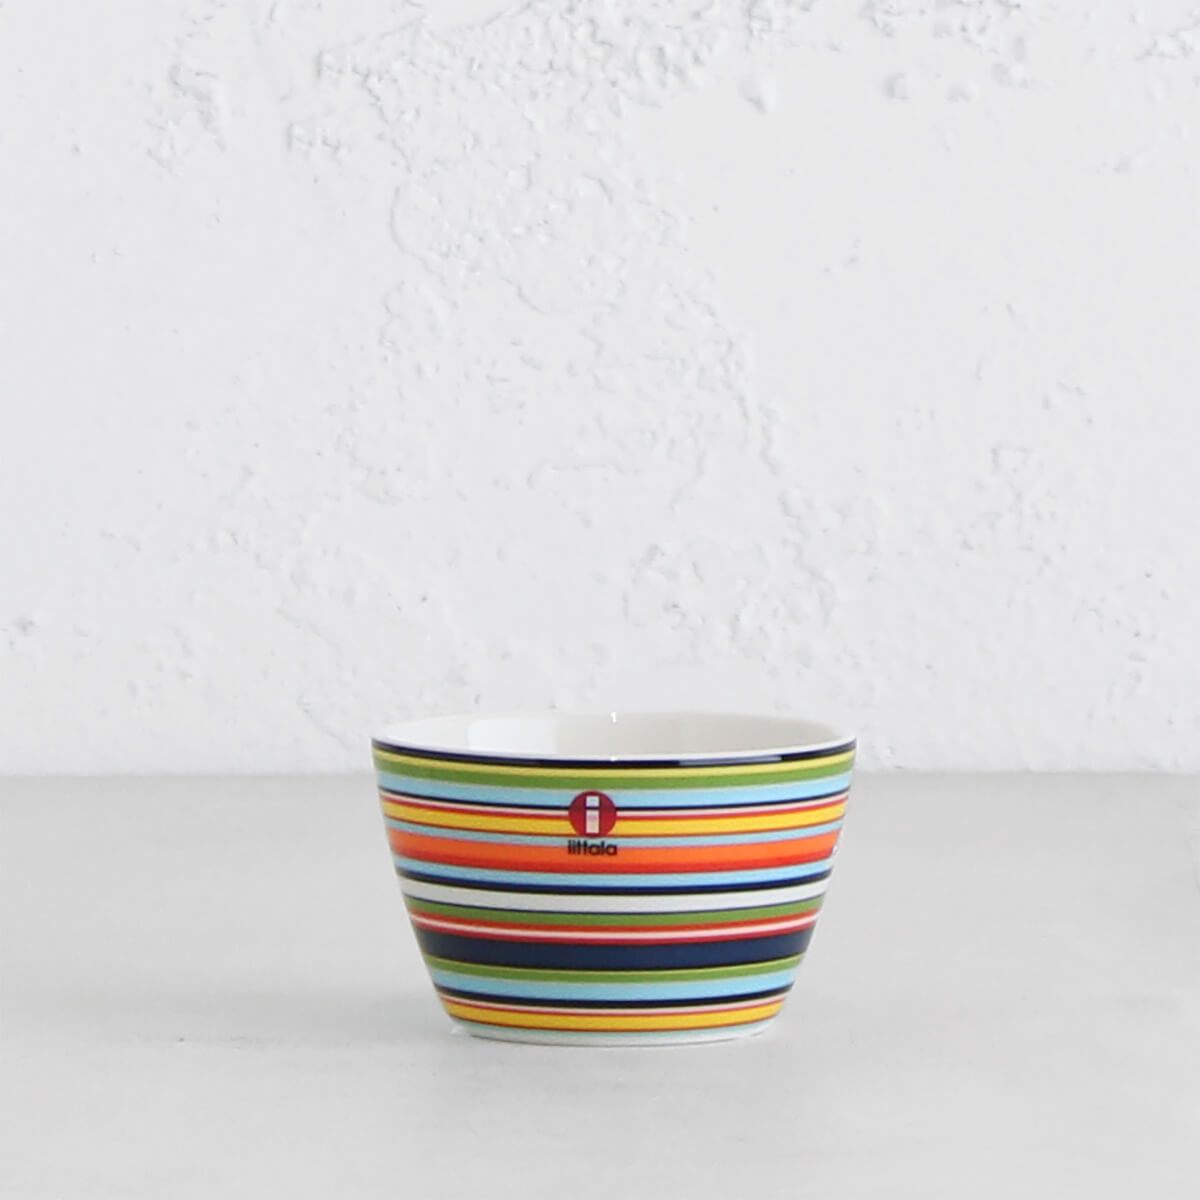 IITTALA  |  ORIGO SNACK BOWL ORANGE  |  150ML